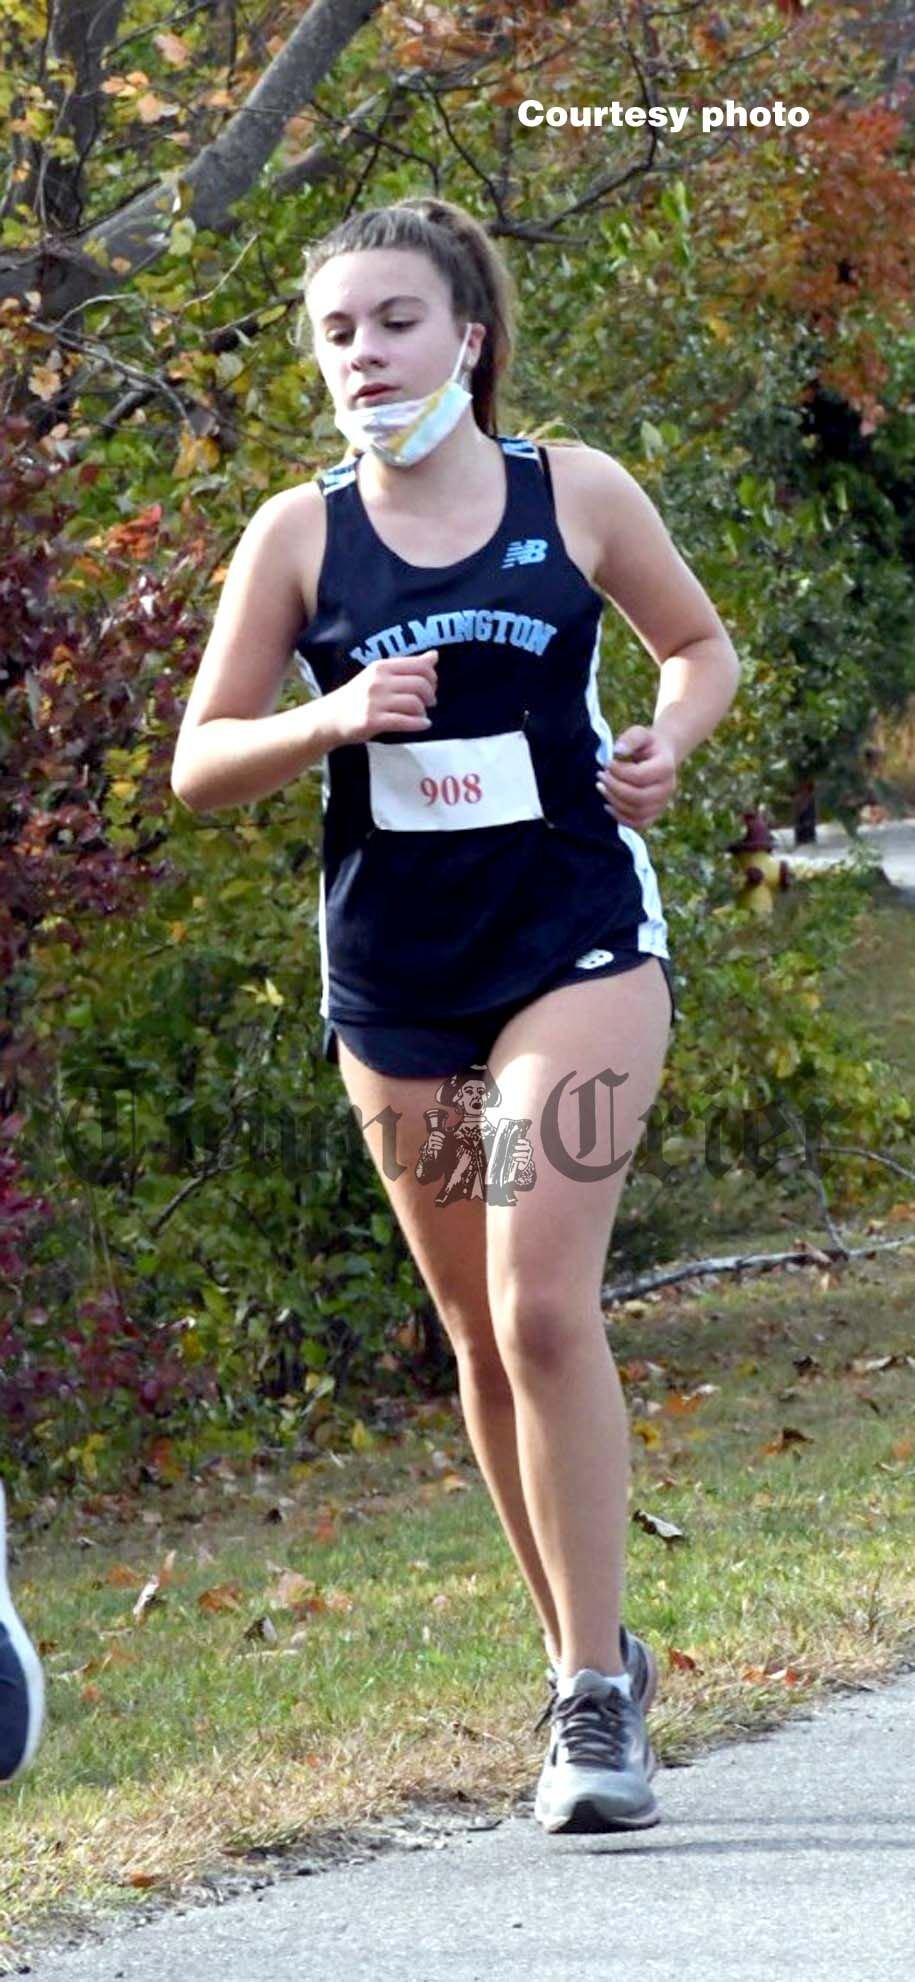 Ellianna Chrinopoulo in her first cross-country meet